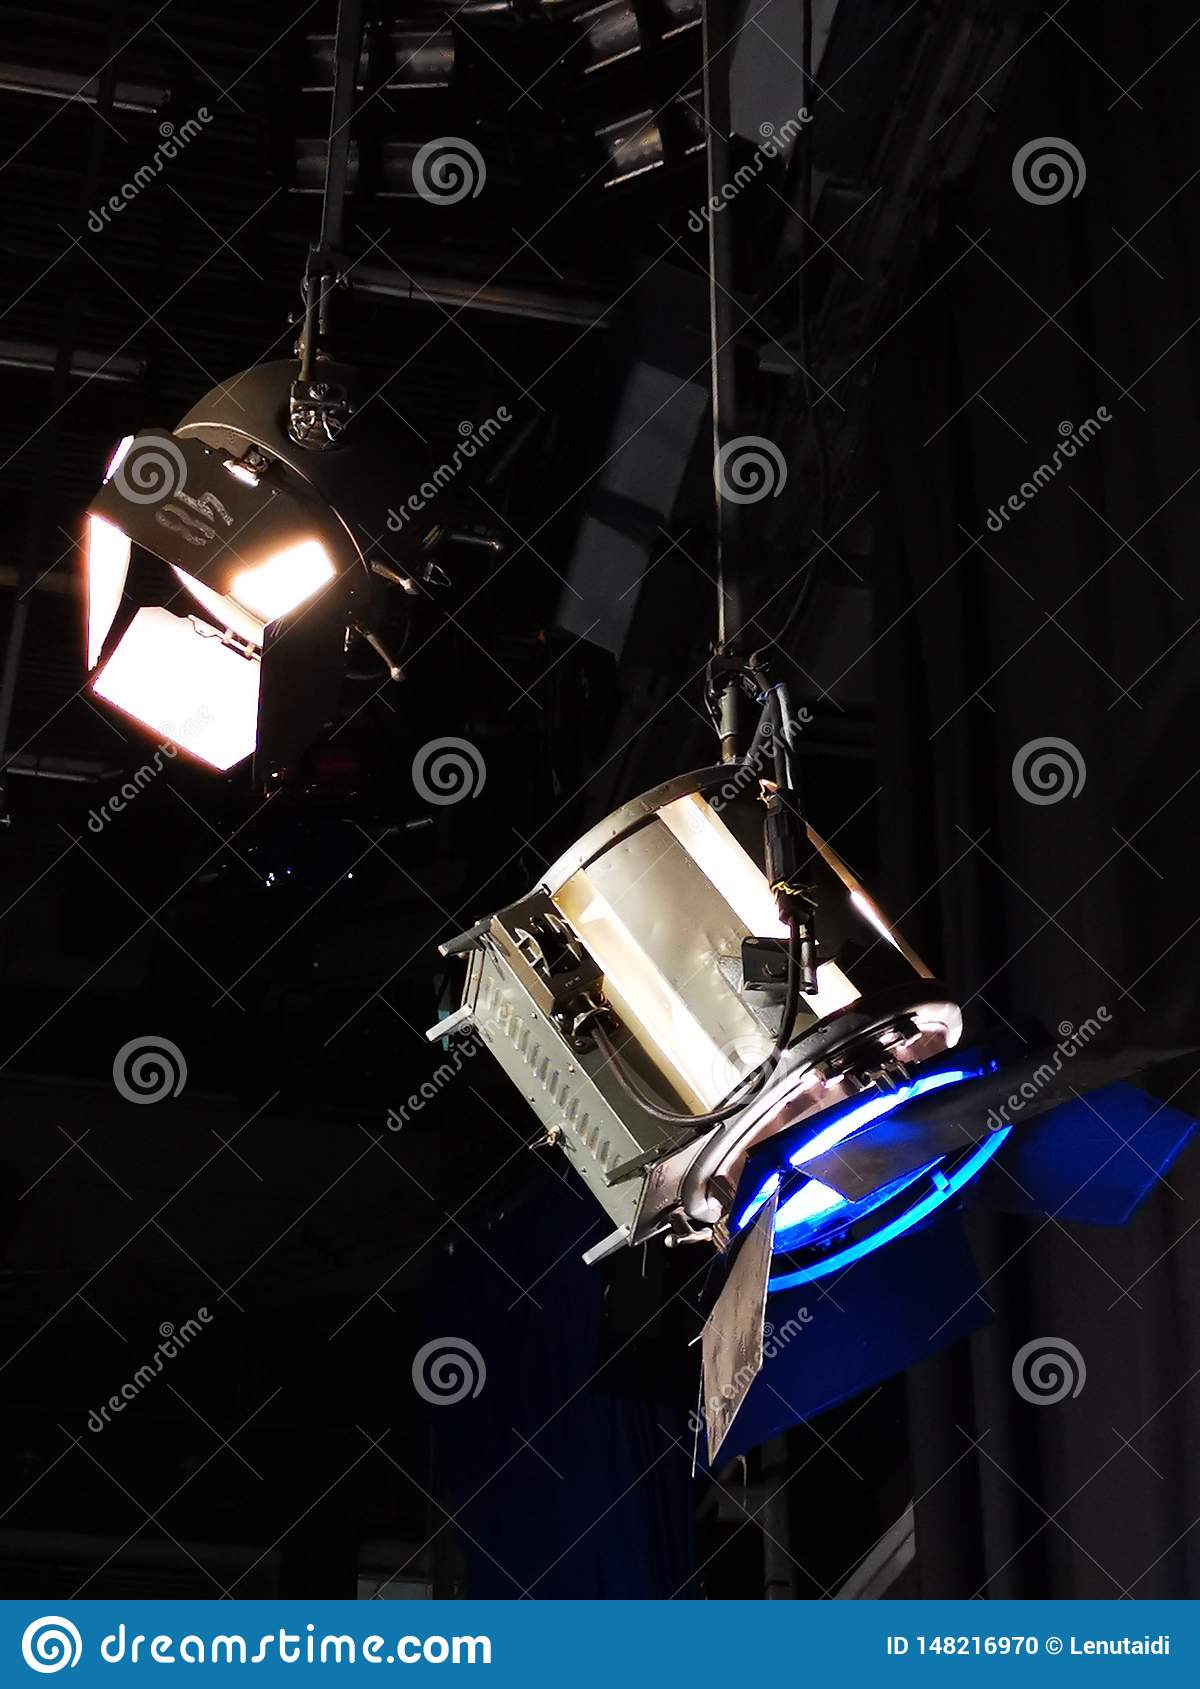 Two spotlights - one with a blue filter